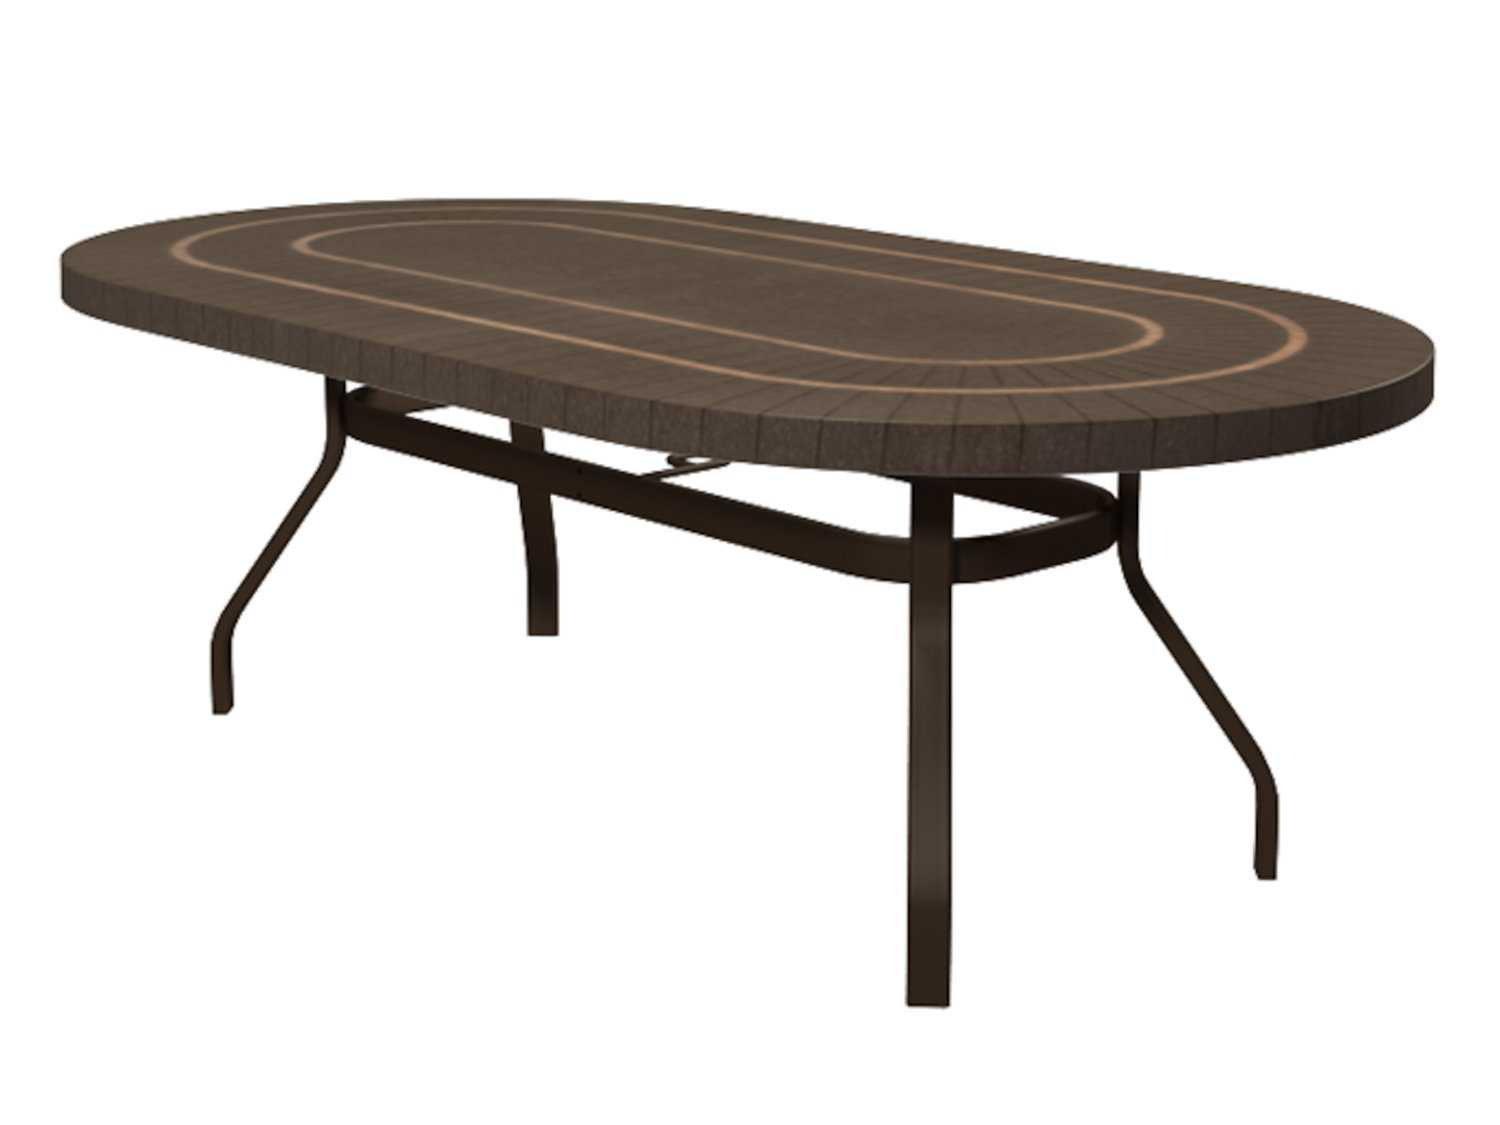 ... Faux Wood Aluminum Outdoor Furniture By Homecrest Sorrento Faux 44 X 84  Oval Balcony Table With ...